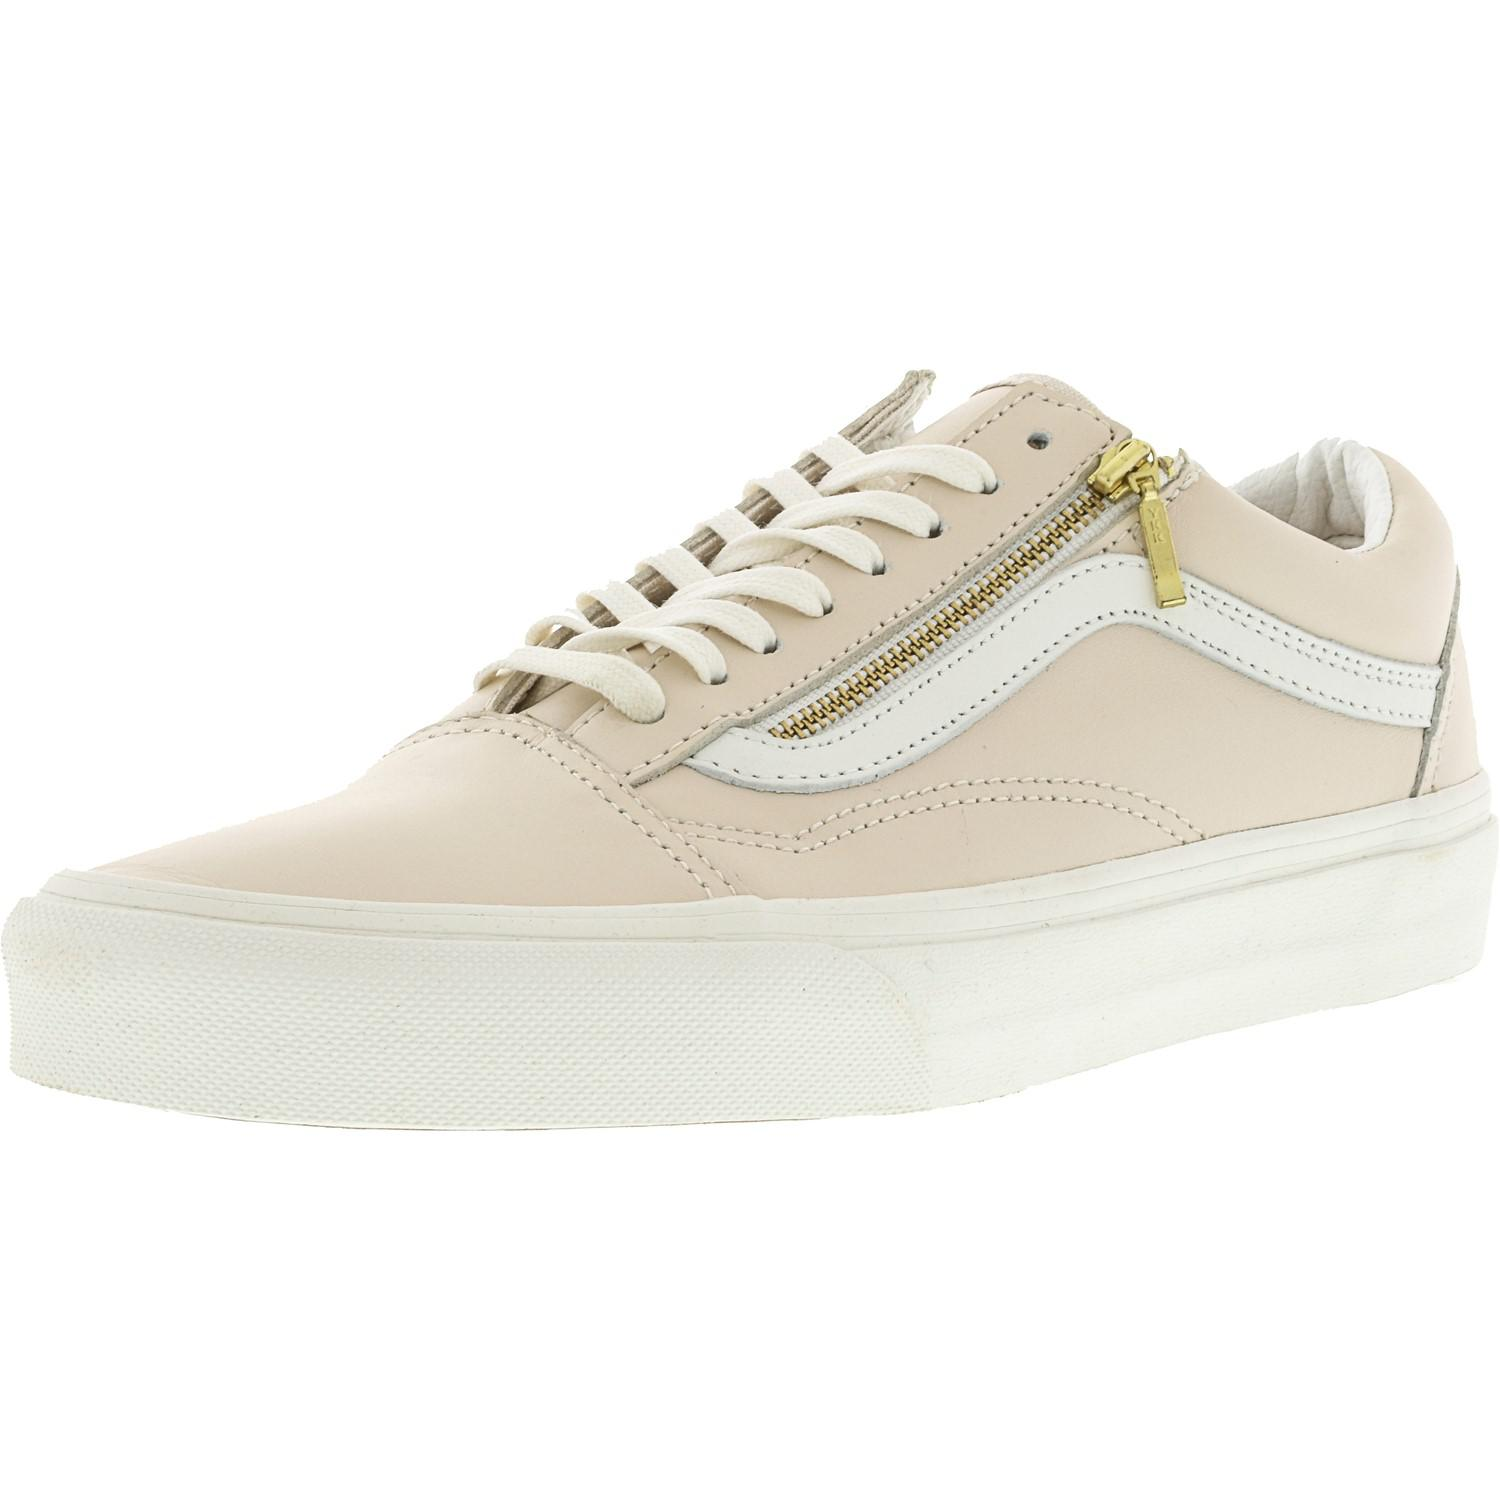 3259de955e Lyst - Vans Old Skool Zip Leather Whispering Pink   Blanc De Ankle ...